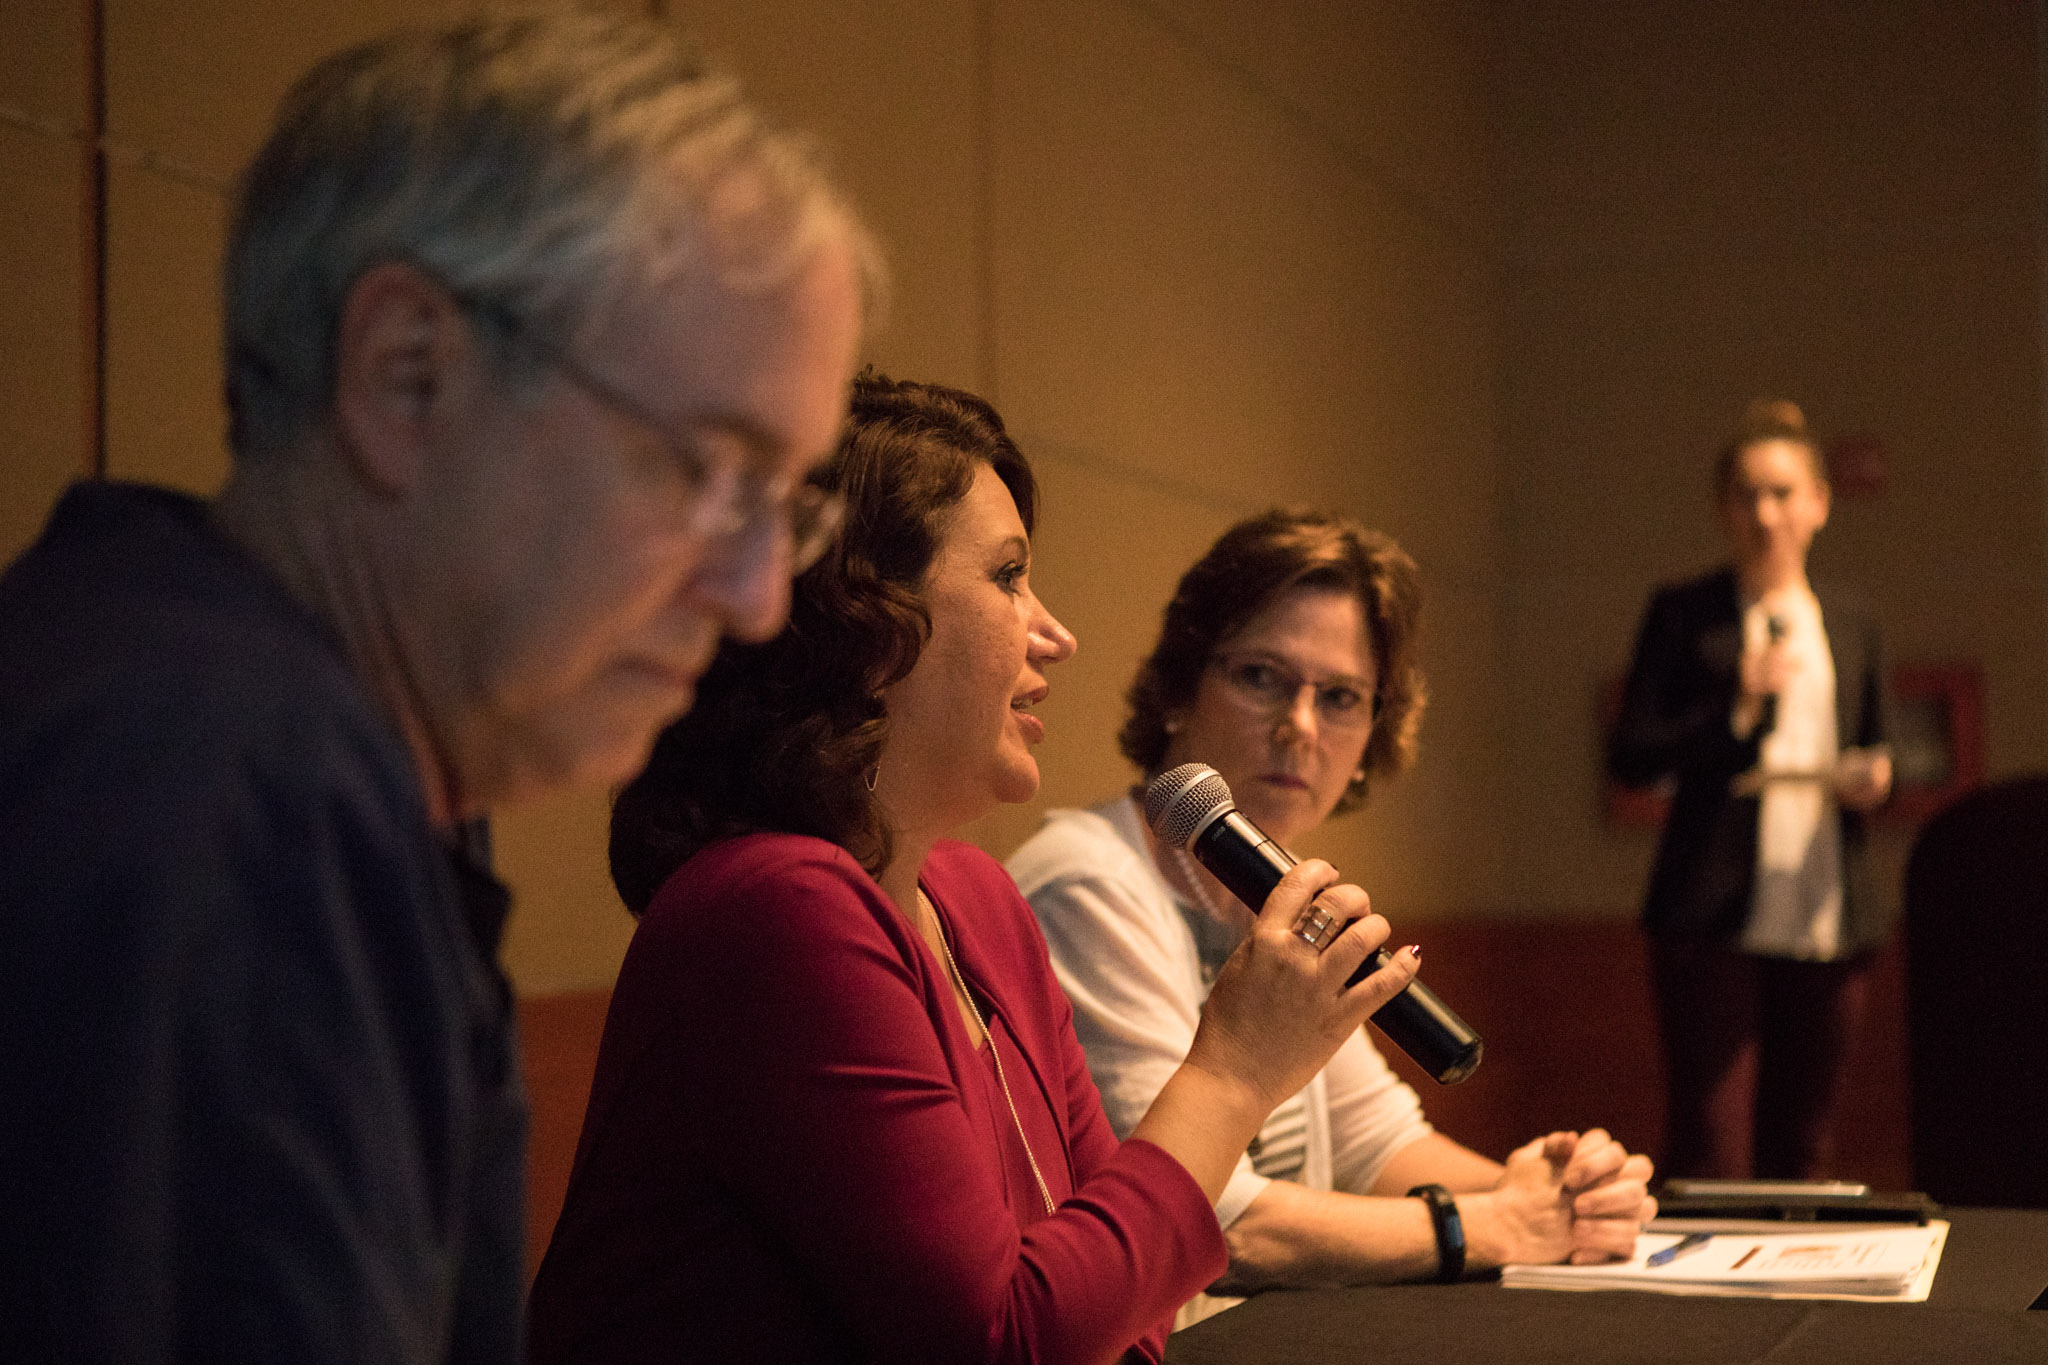 (From left) American Heart Association Board President Landon Wellford, Tricare Division at Humana Chief Medical Officer Sandra Delgado, and San Antonio Metropolitan Health District Director Colleen Bridger partake in a panel discussion at the Tobacco 21 Town Hall Meeting at La Orilla Del Rio Ballroom.